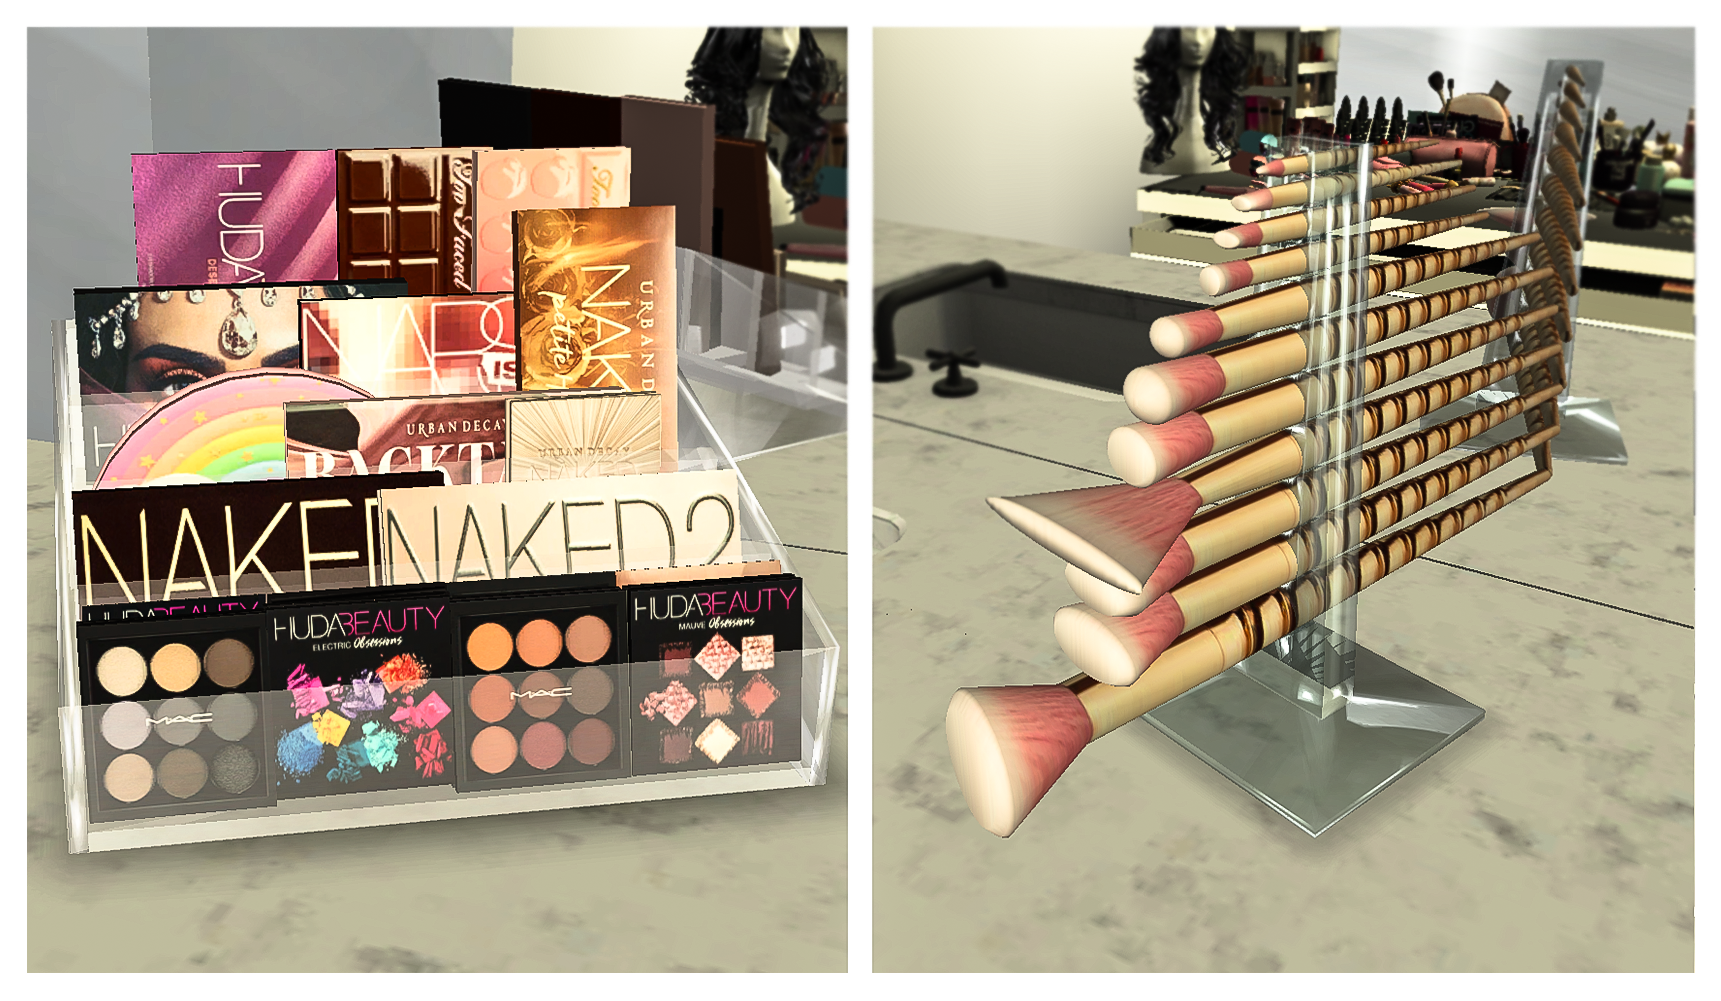 Mobel Ebonix Eyeshadow Palette Holder And Makeup Brush Holder Brush Ebonix Eyeshadow Holder Lips Fillers Lip In 2020 Sims 4 Cc Furniture Sims 4 Bedroom Sims 4